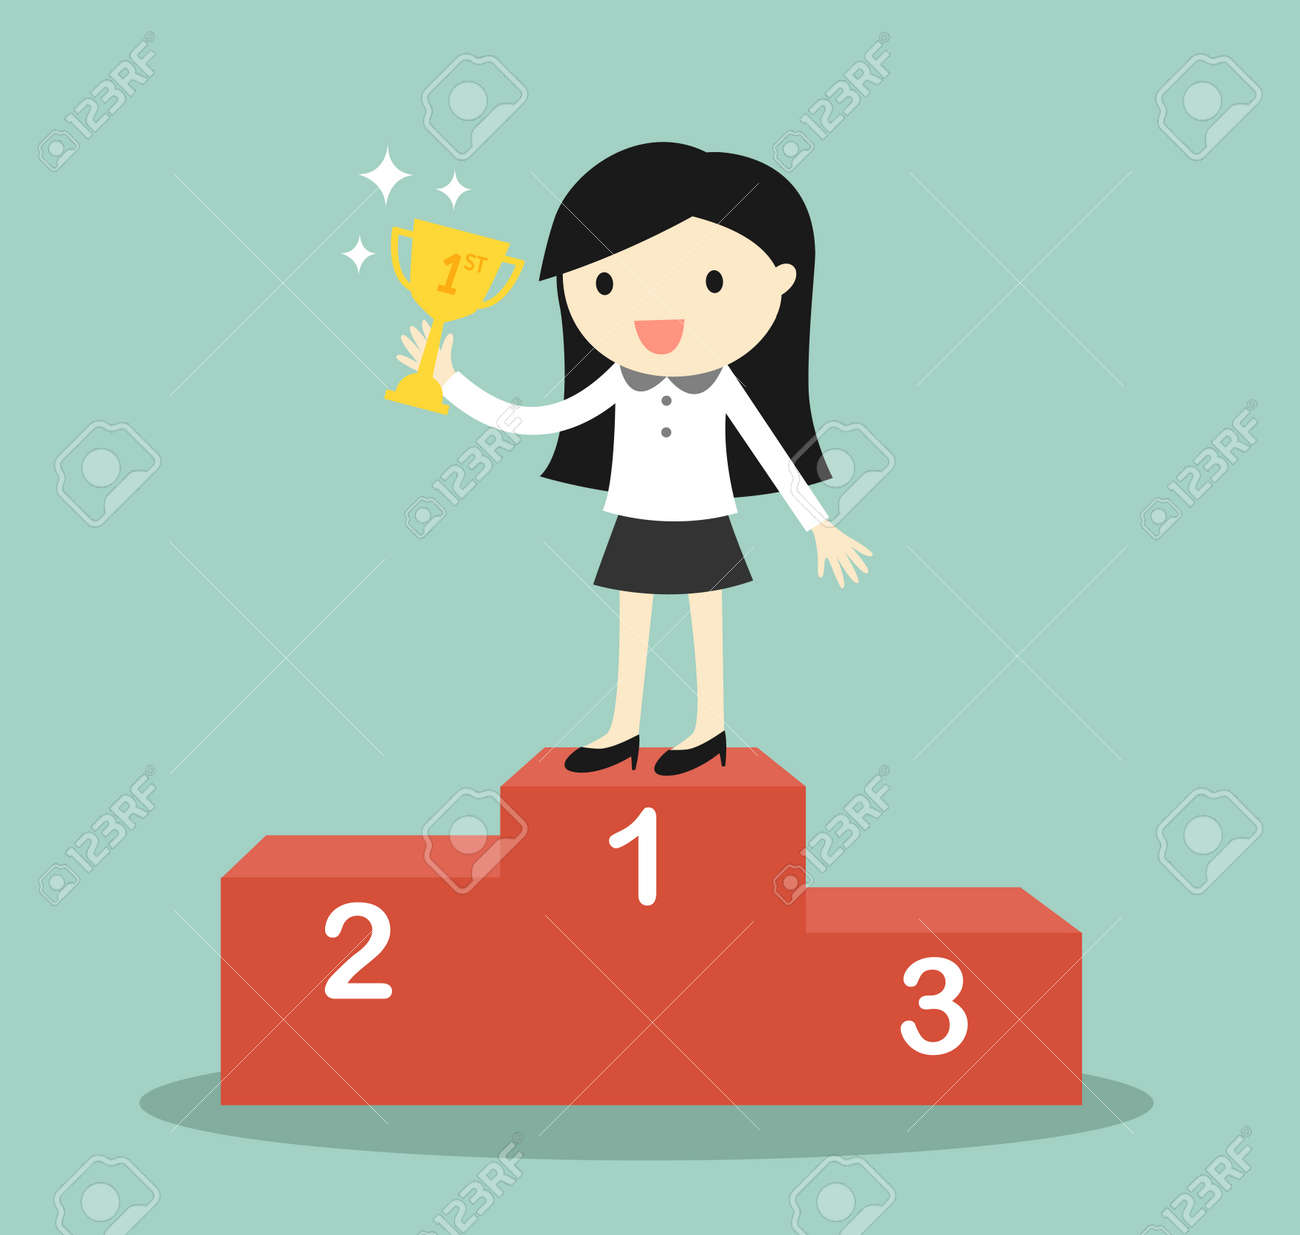 Business concept, business woman standing on the winning podium and holding trophy. Vector illustration. - 50644759